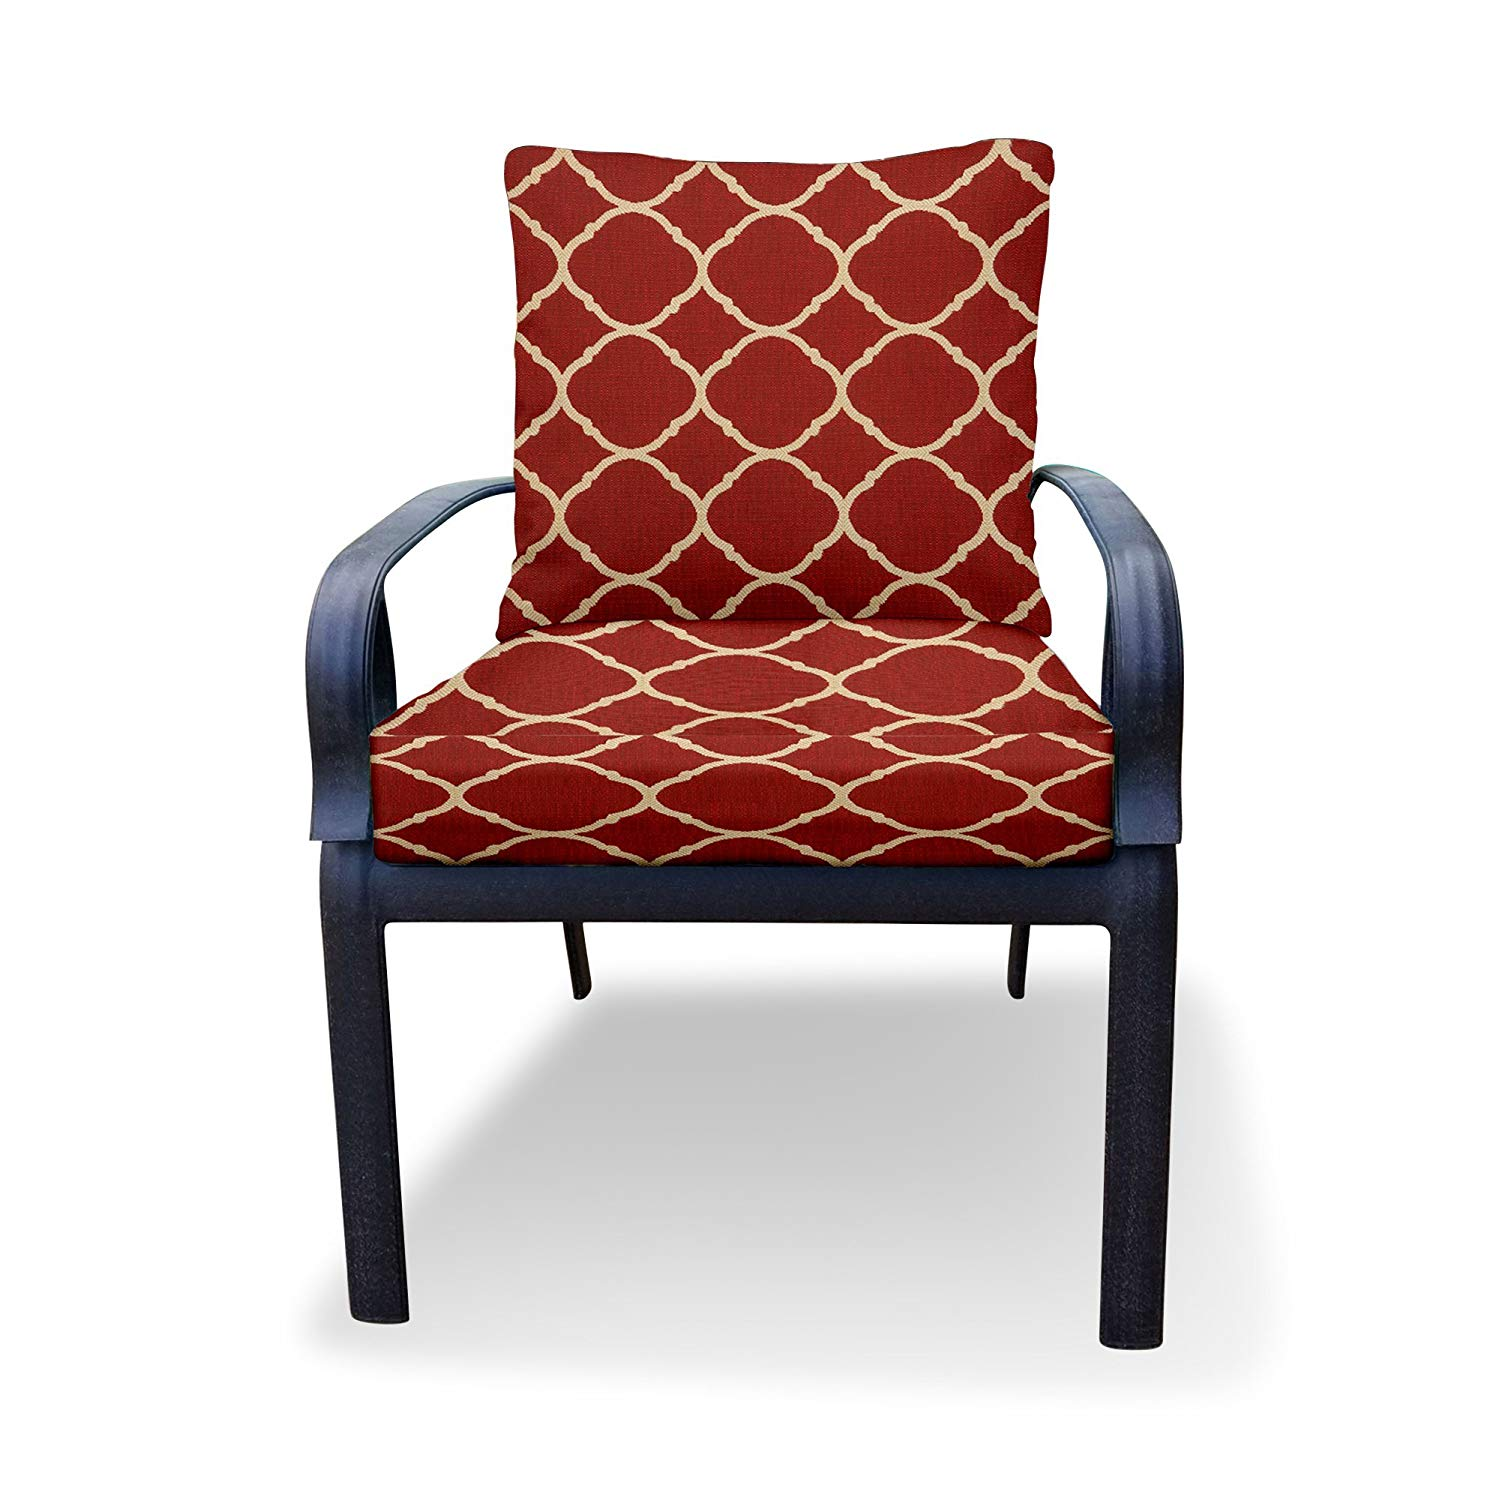 Thomas Collection Outdoor Cushion Set, Red Ivory Outdoor Cushions for Chair, Chaise or Seat Only, Sunbrella Outdoor Cushion, Handmade in USA, 13196 - Furniture Not Included